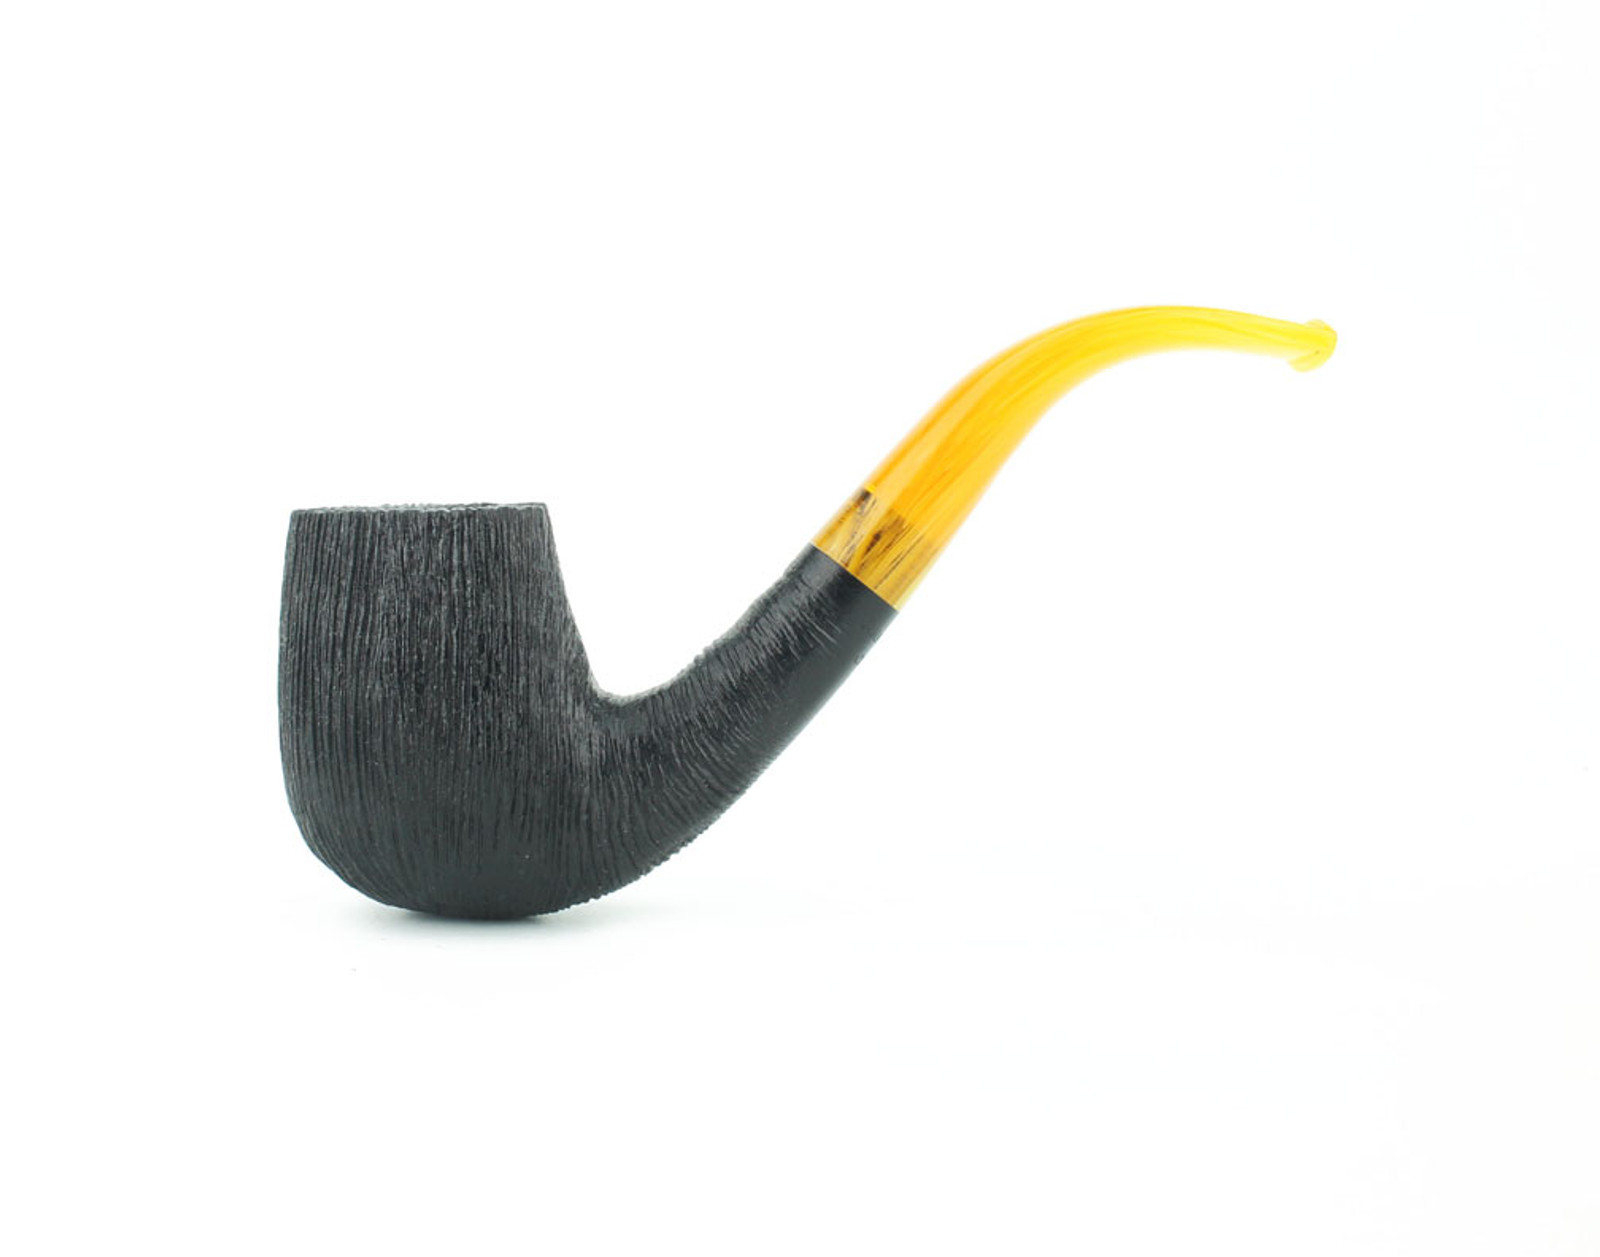 C12DR A - BriarWorks Classic C12 Bent Billiard - Dark Rusticated w/ Amber Stem